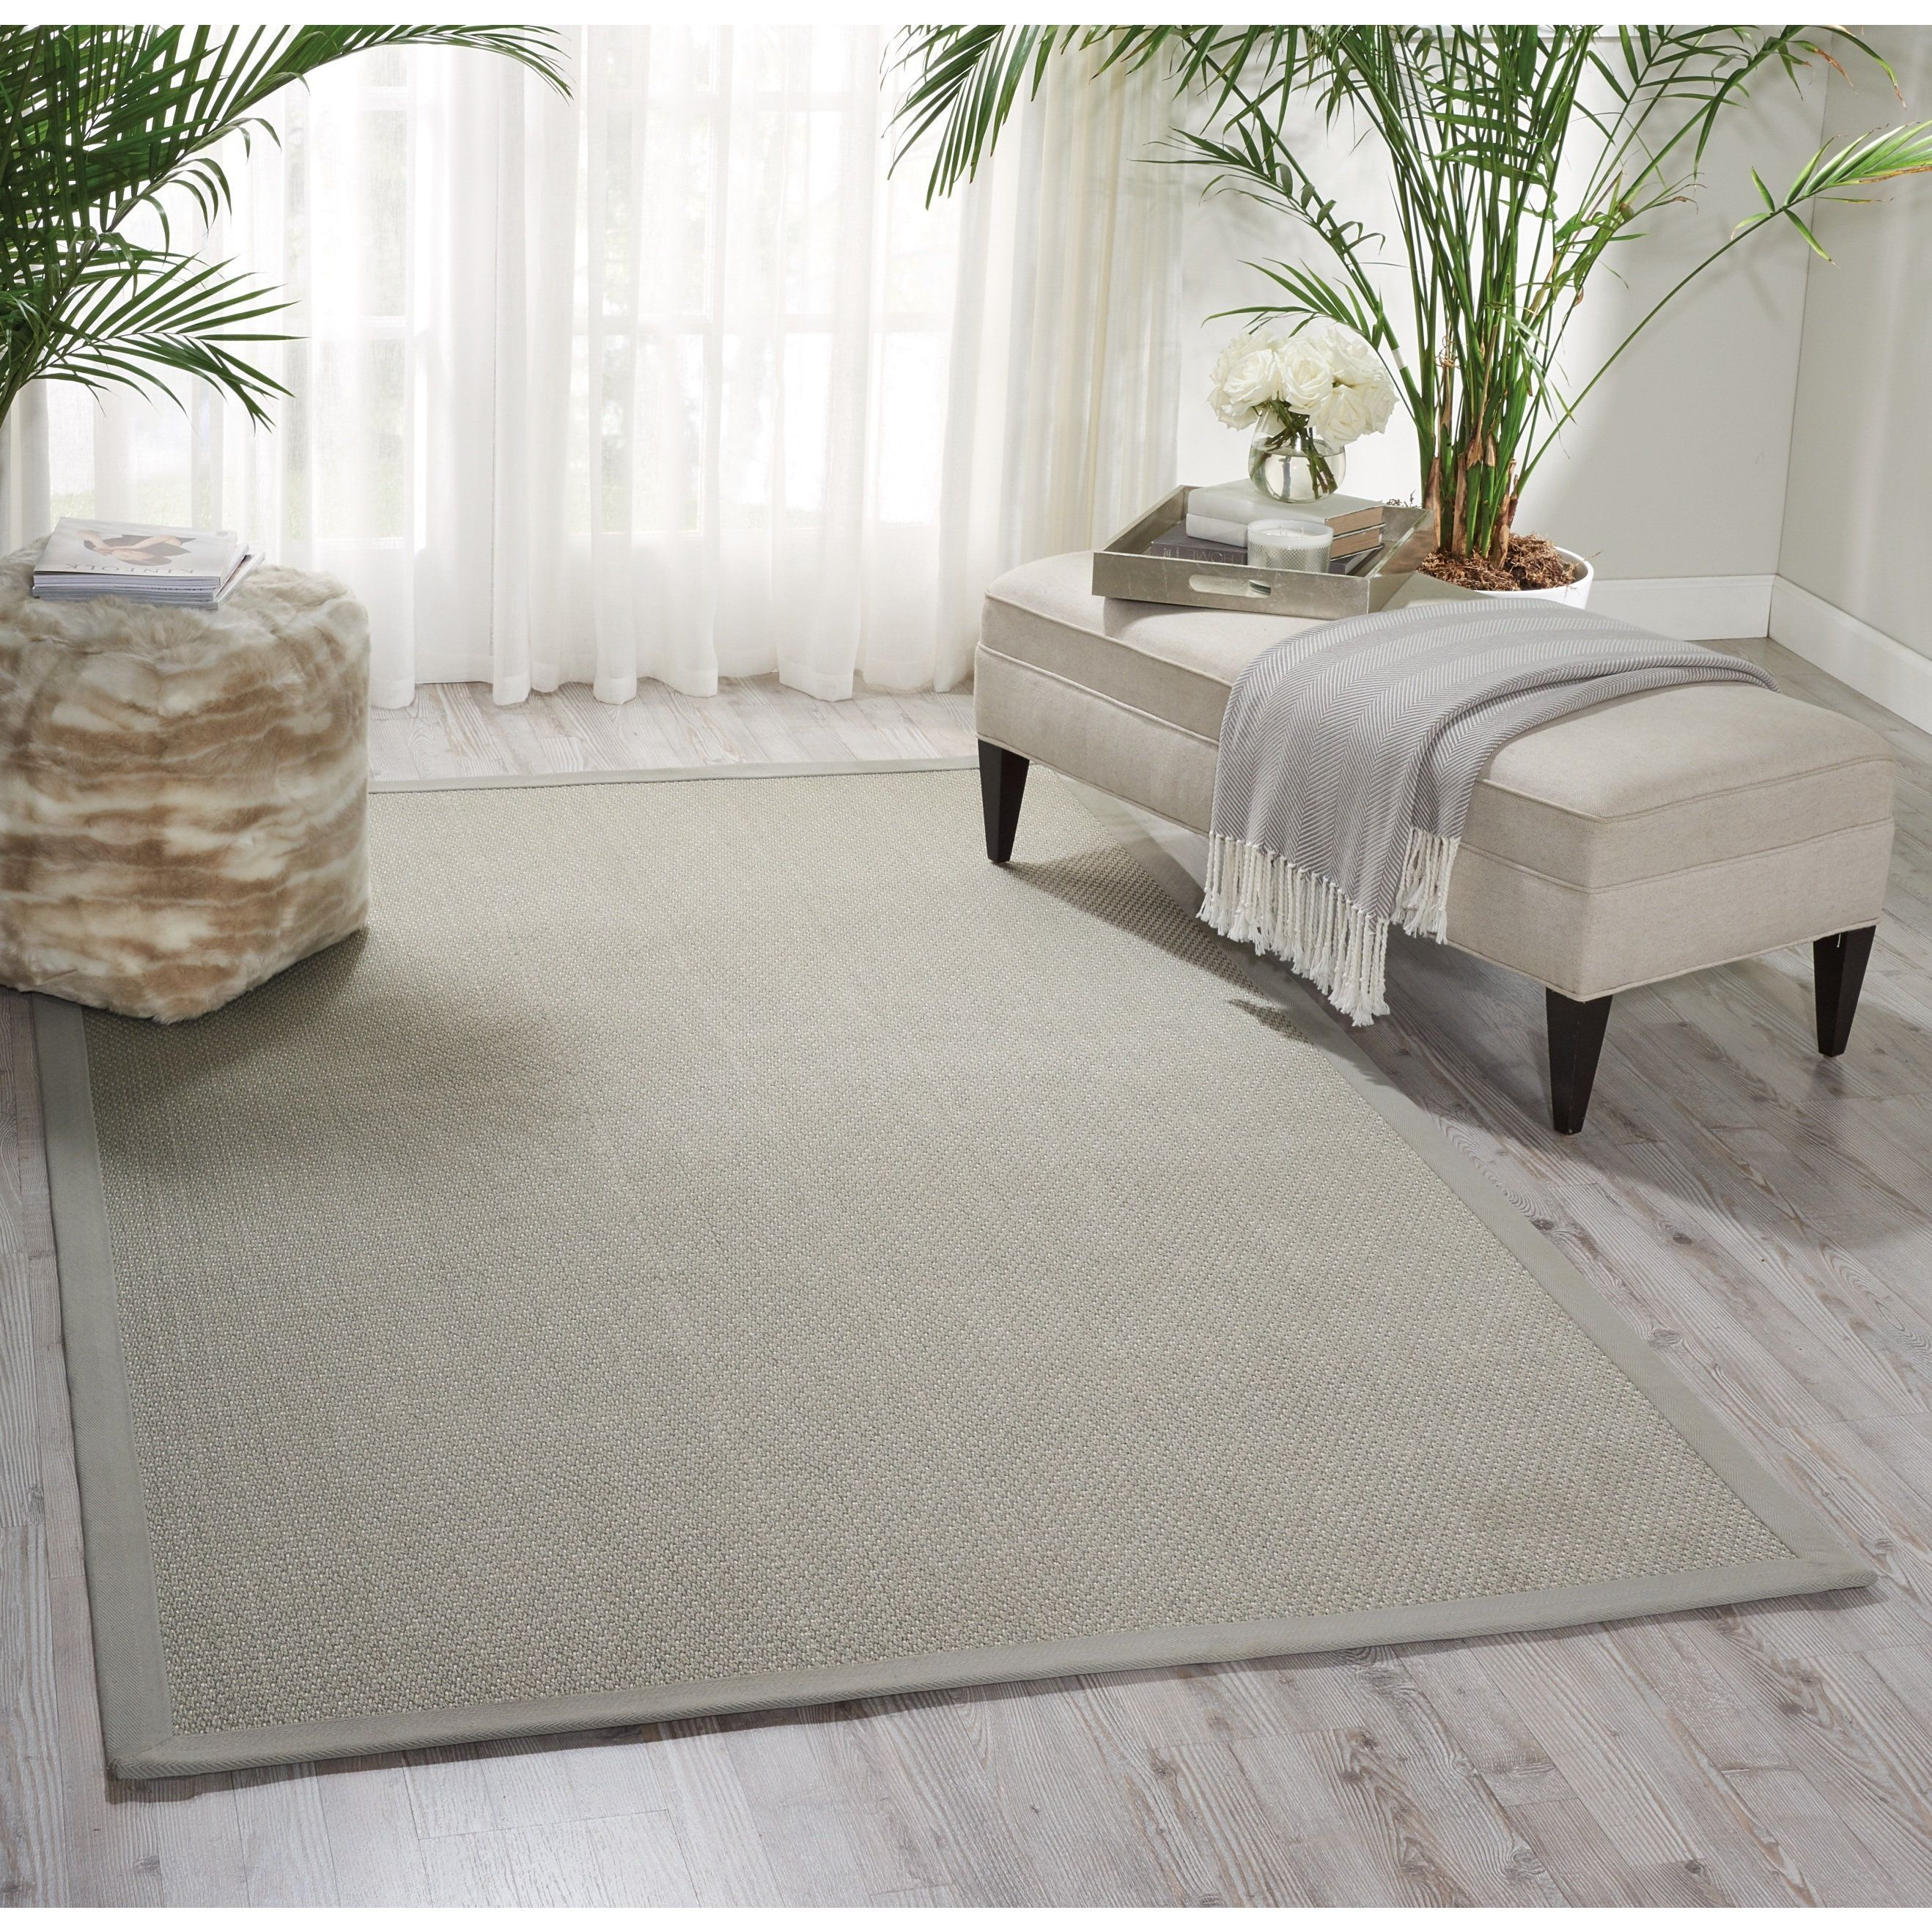 Nourison outerbanks horizon area rug u x u u x u green